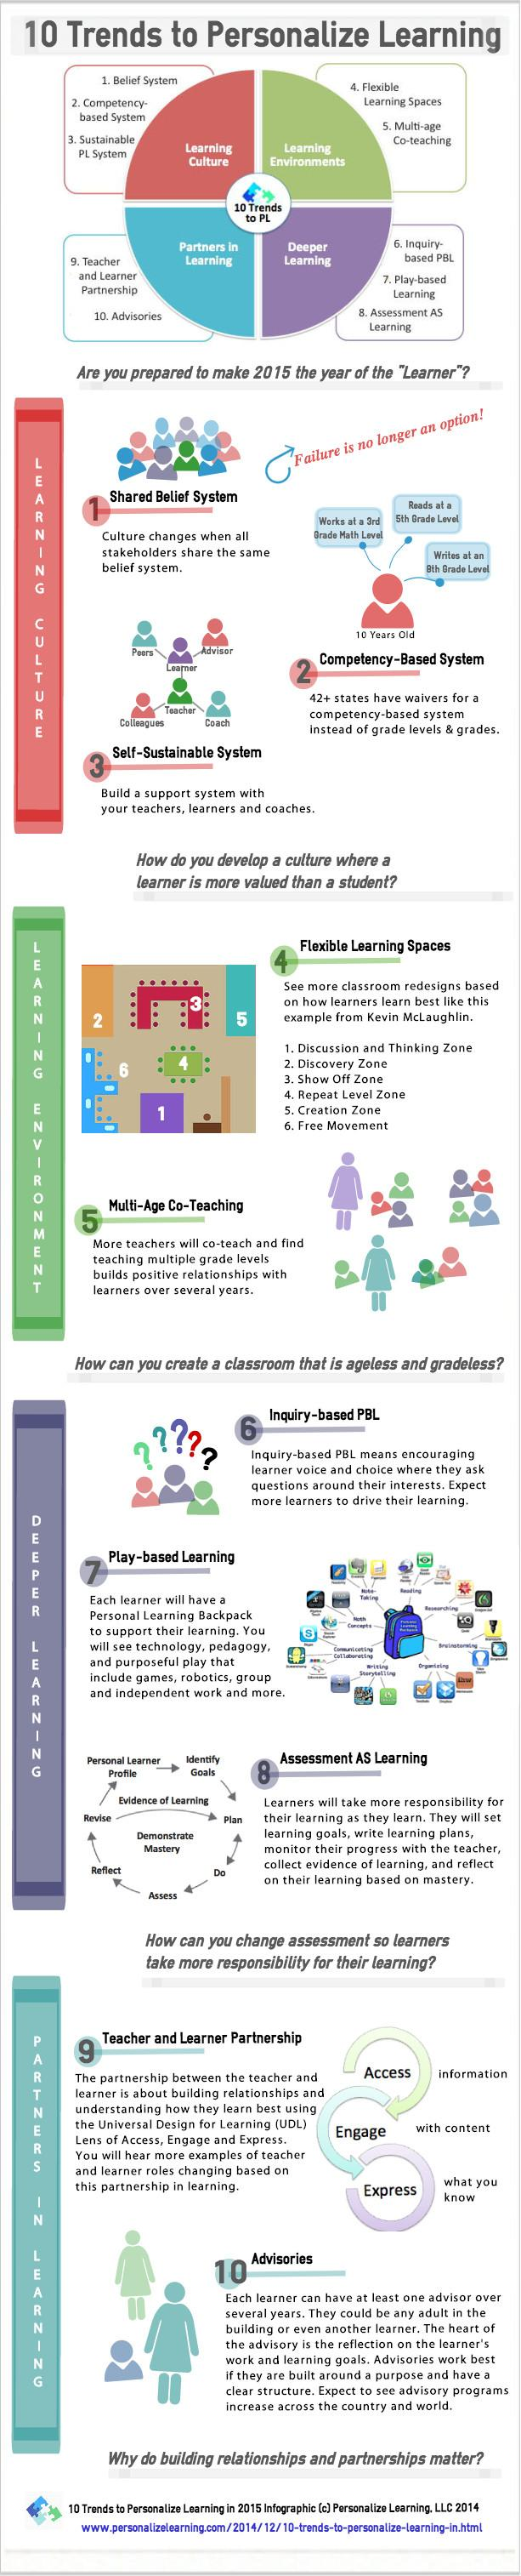 ten-trends-to-personalize-learning-in-2015-infographic